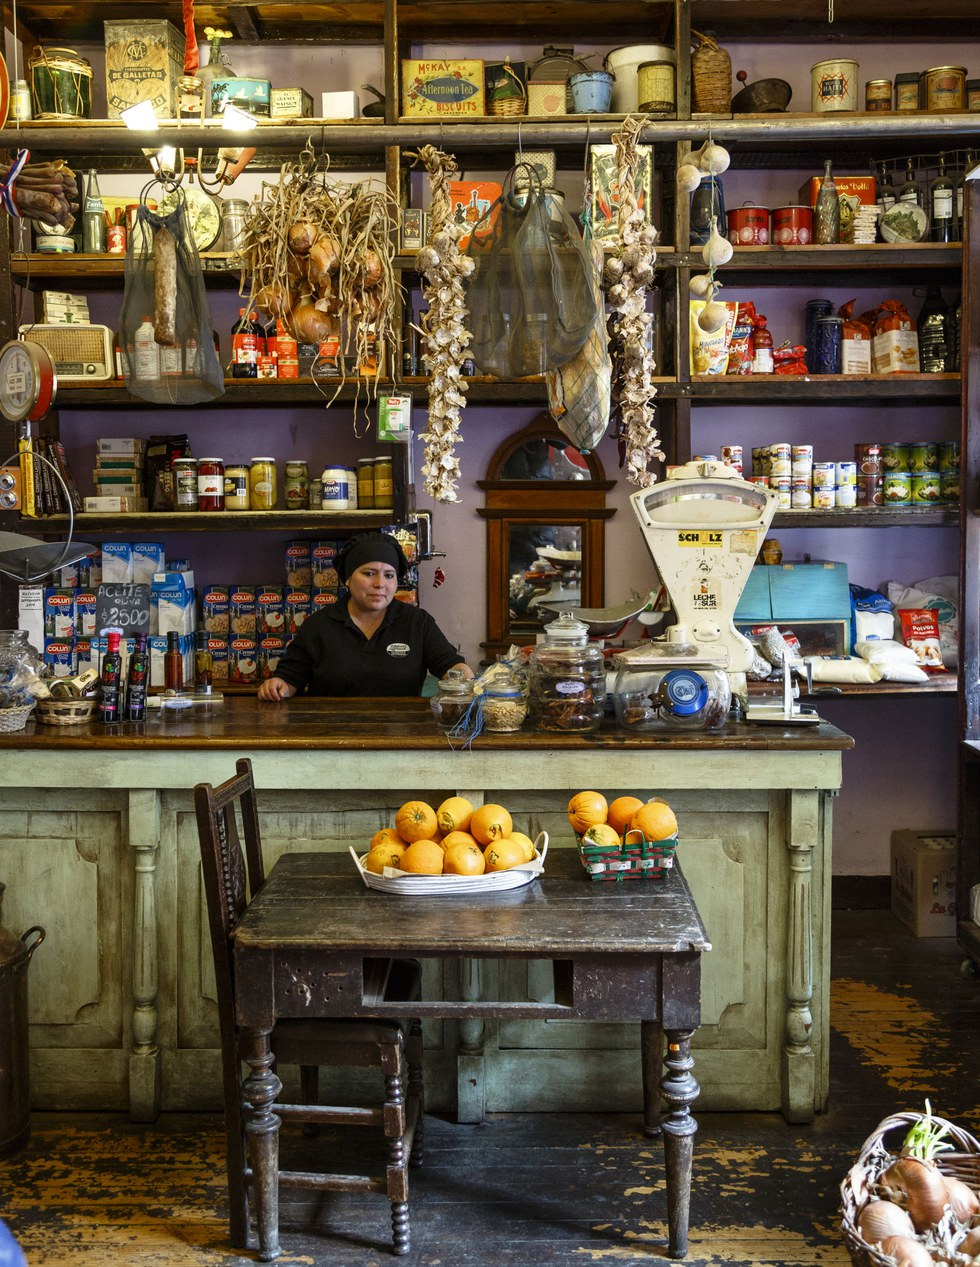 A charming market counter inside the French restaurant Boulevard Lavaud